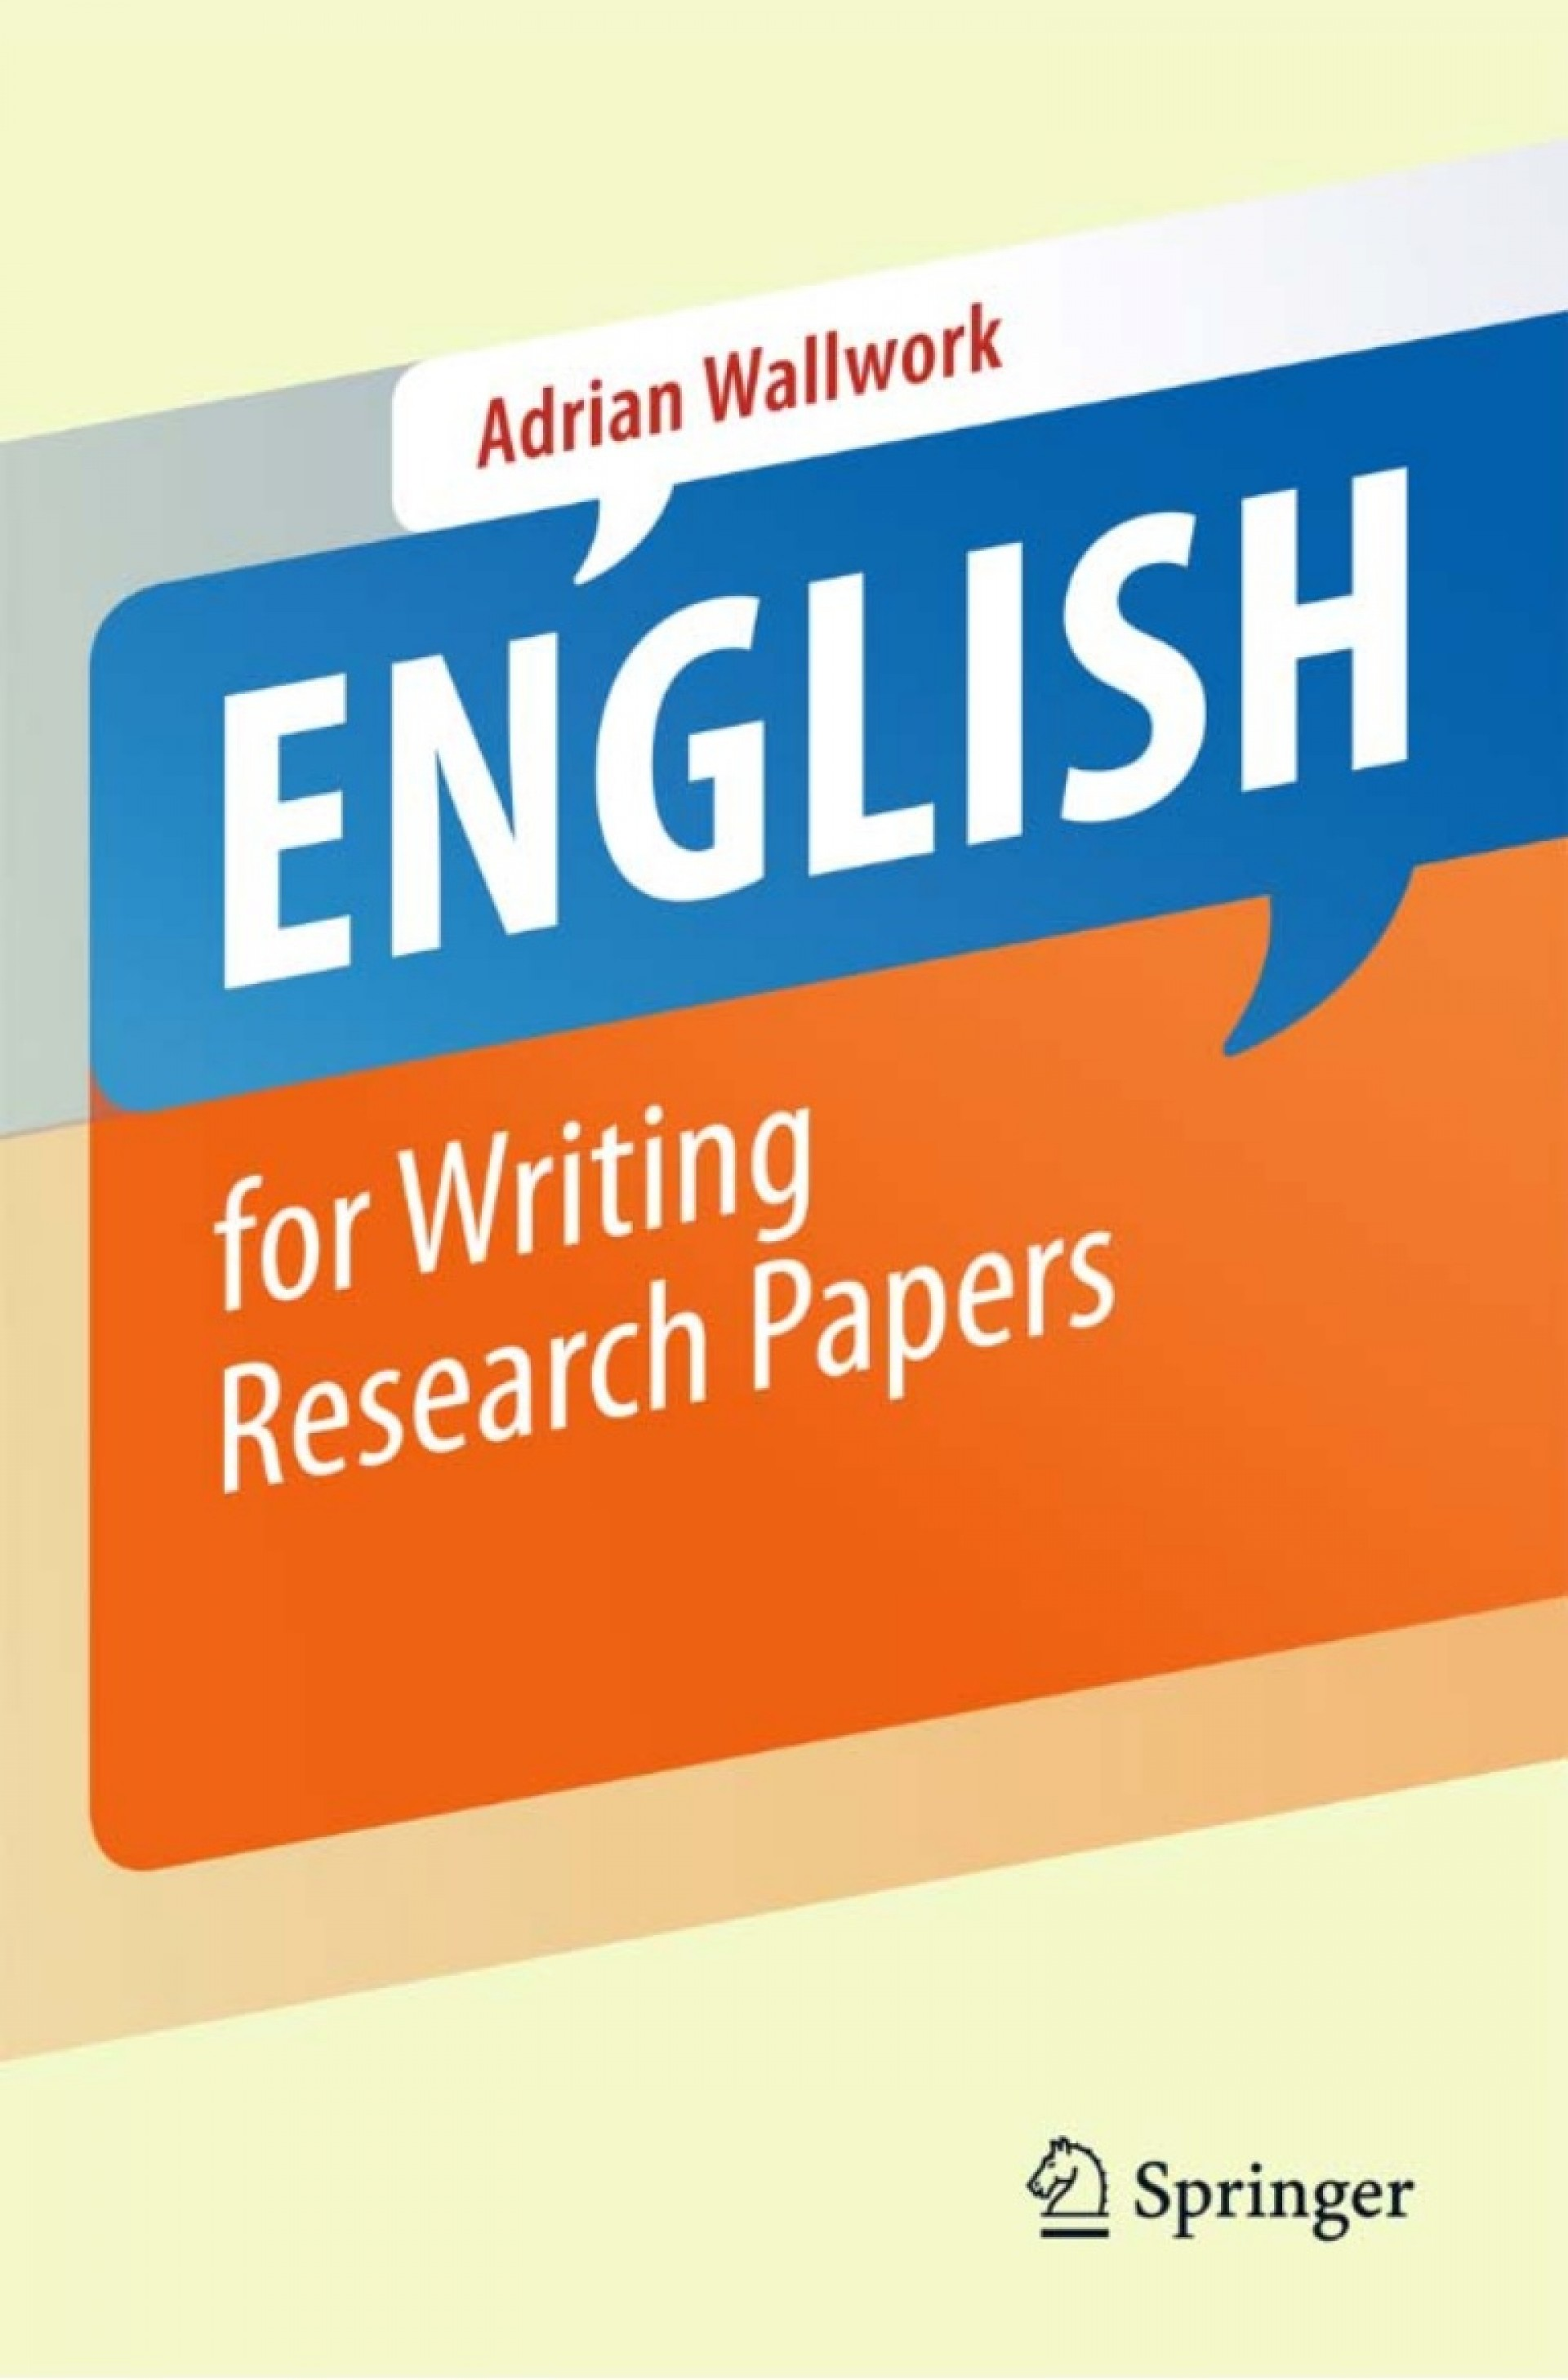 002 Englishforwritingresearchpapers Conversion Gate01 Thumbnail English For Writing Researchs Adrian Wallwork Pdf Marvelous Research Papers 2011 1920